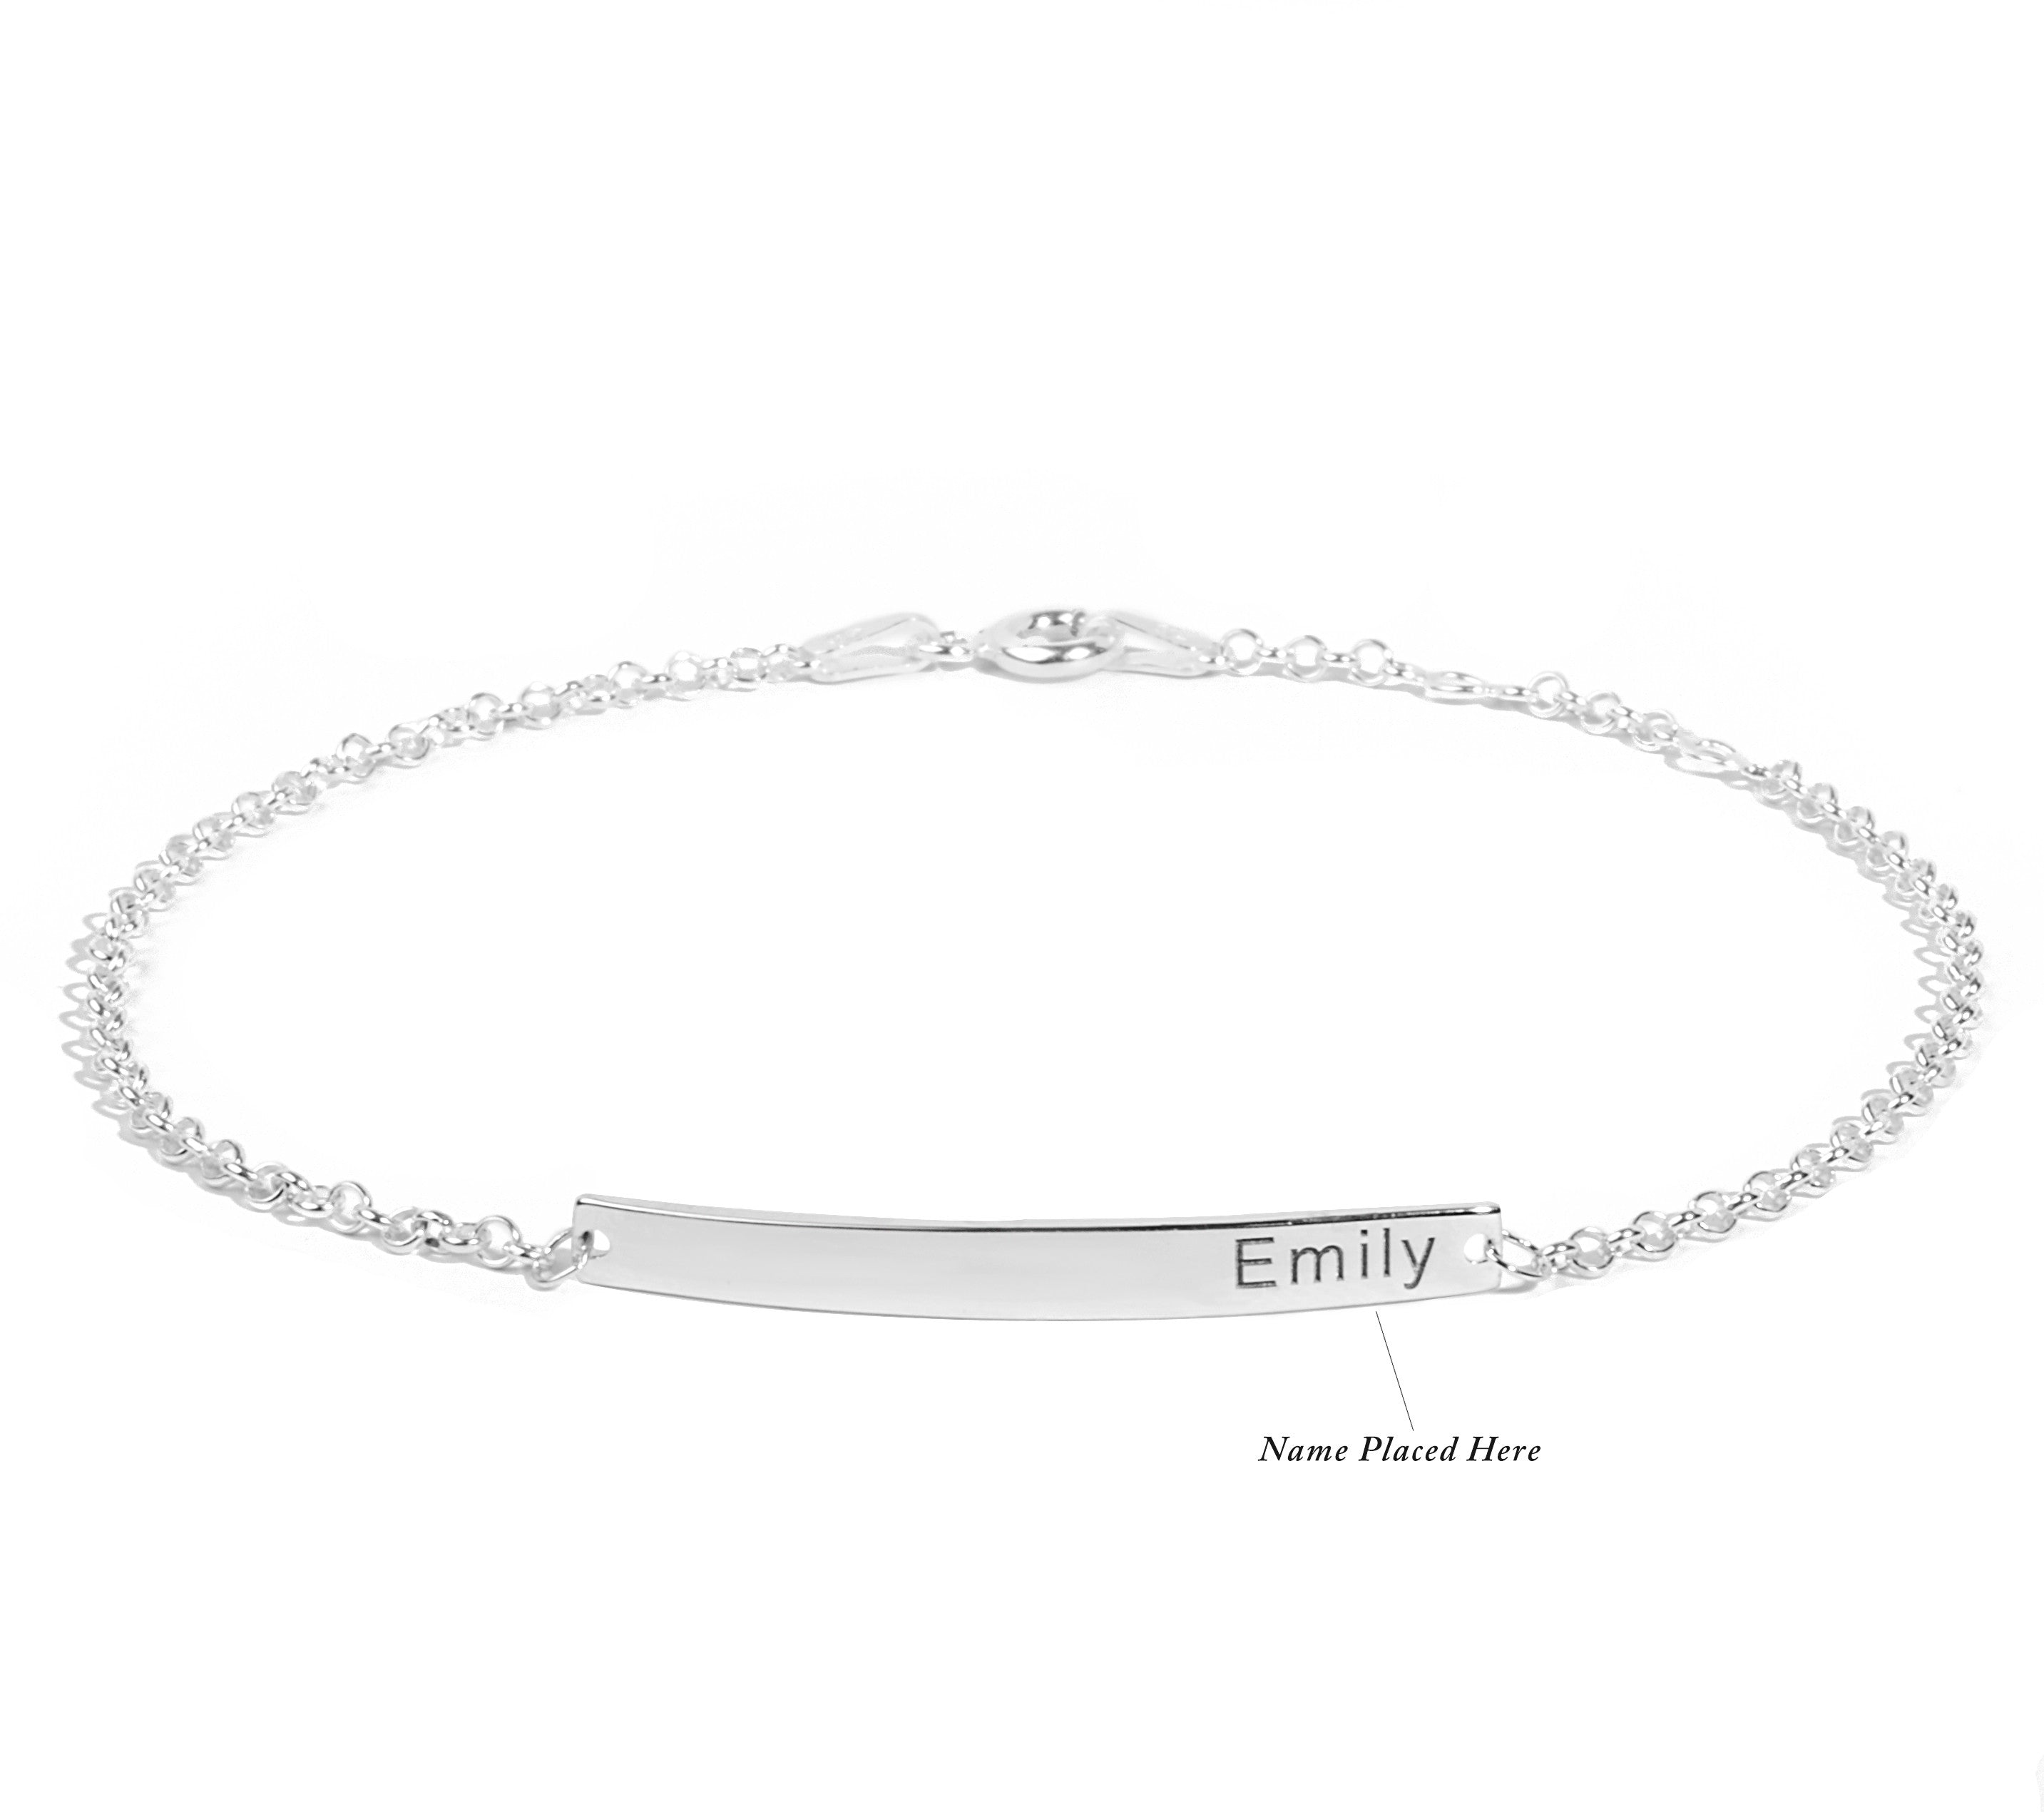 rings name silver sterling anklets custom ankle and personalized bracelets bracelet anklet toe nameplate